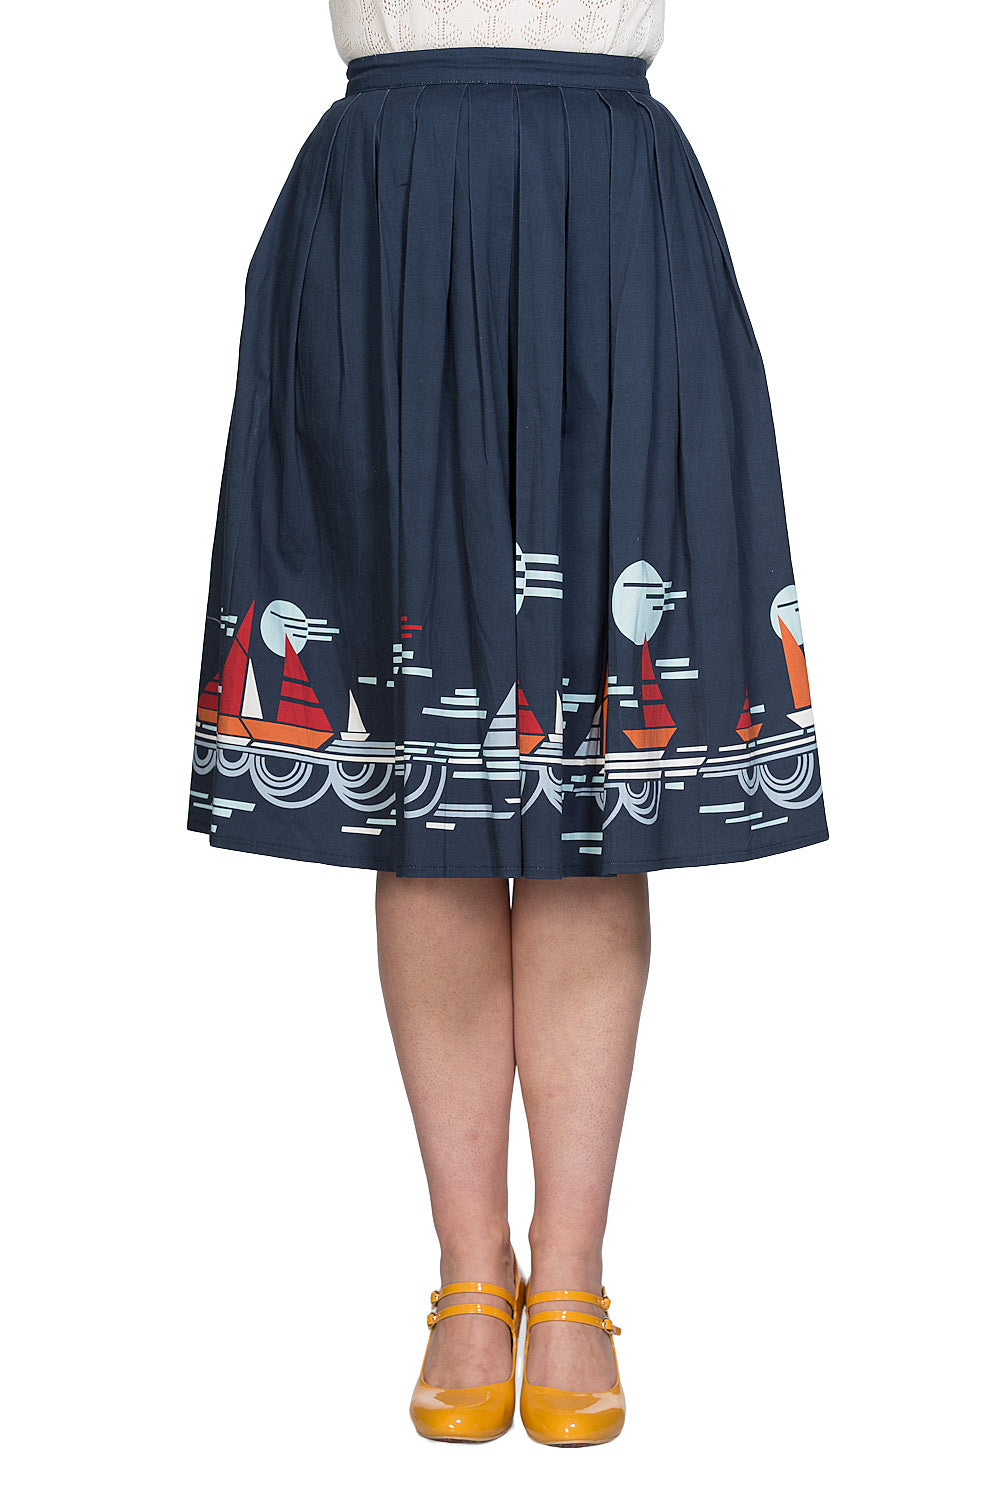 Banned Retro Summer Sail Skirt